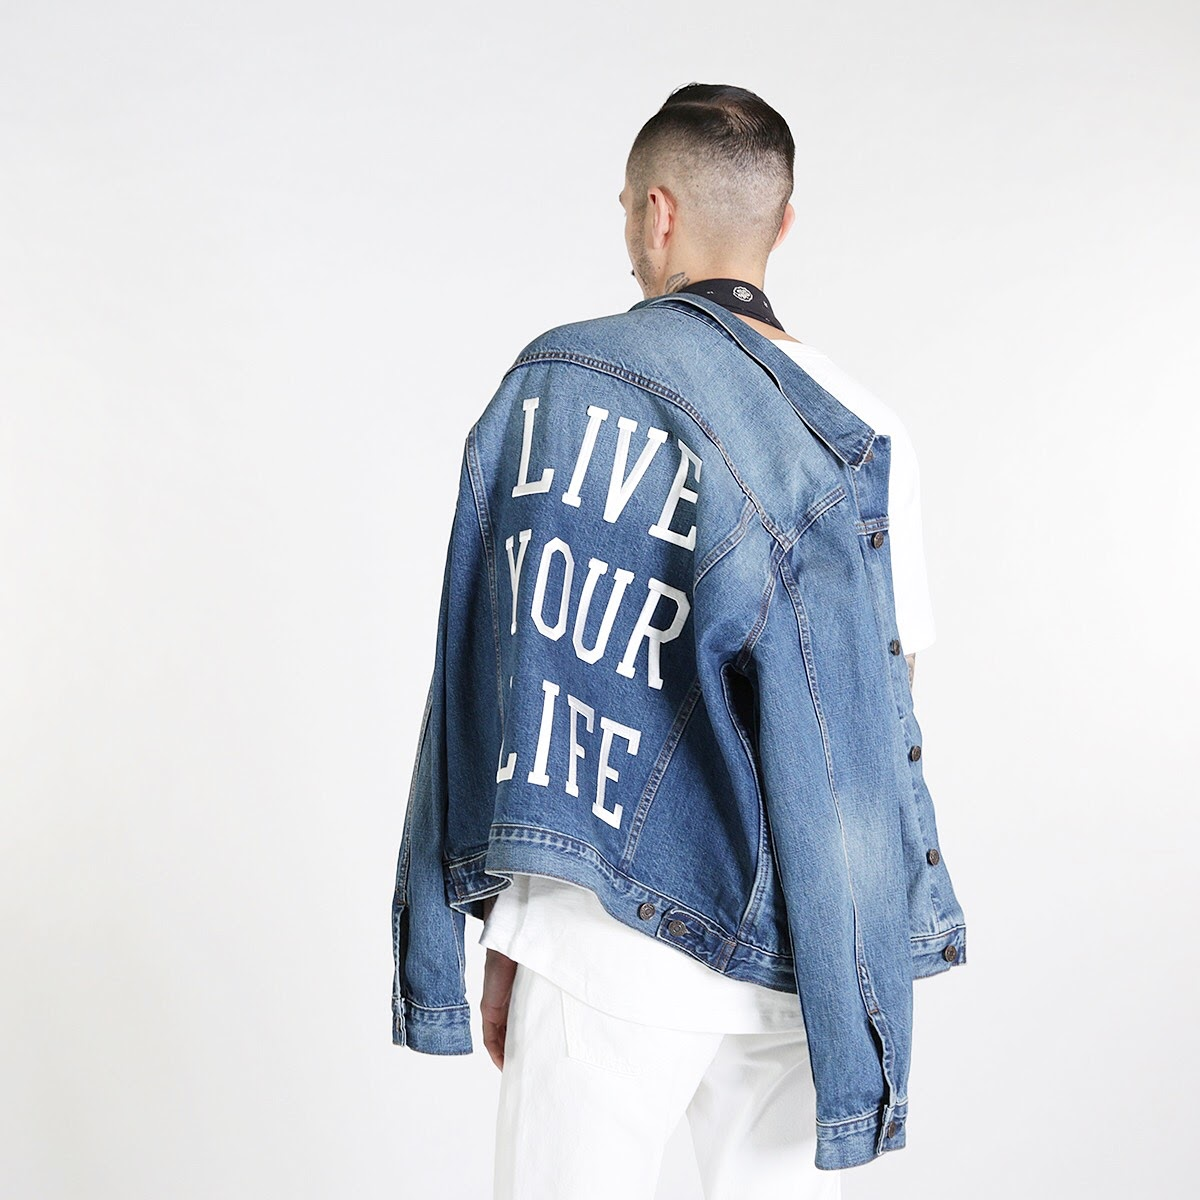 LIVE YOUR LIFE - LGBTQ CAMPAIGN FOR GAP INC